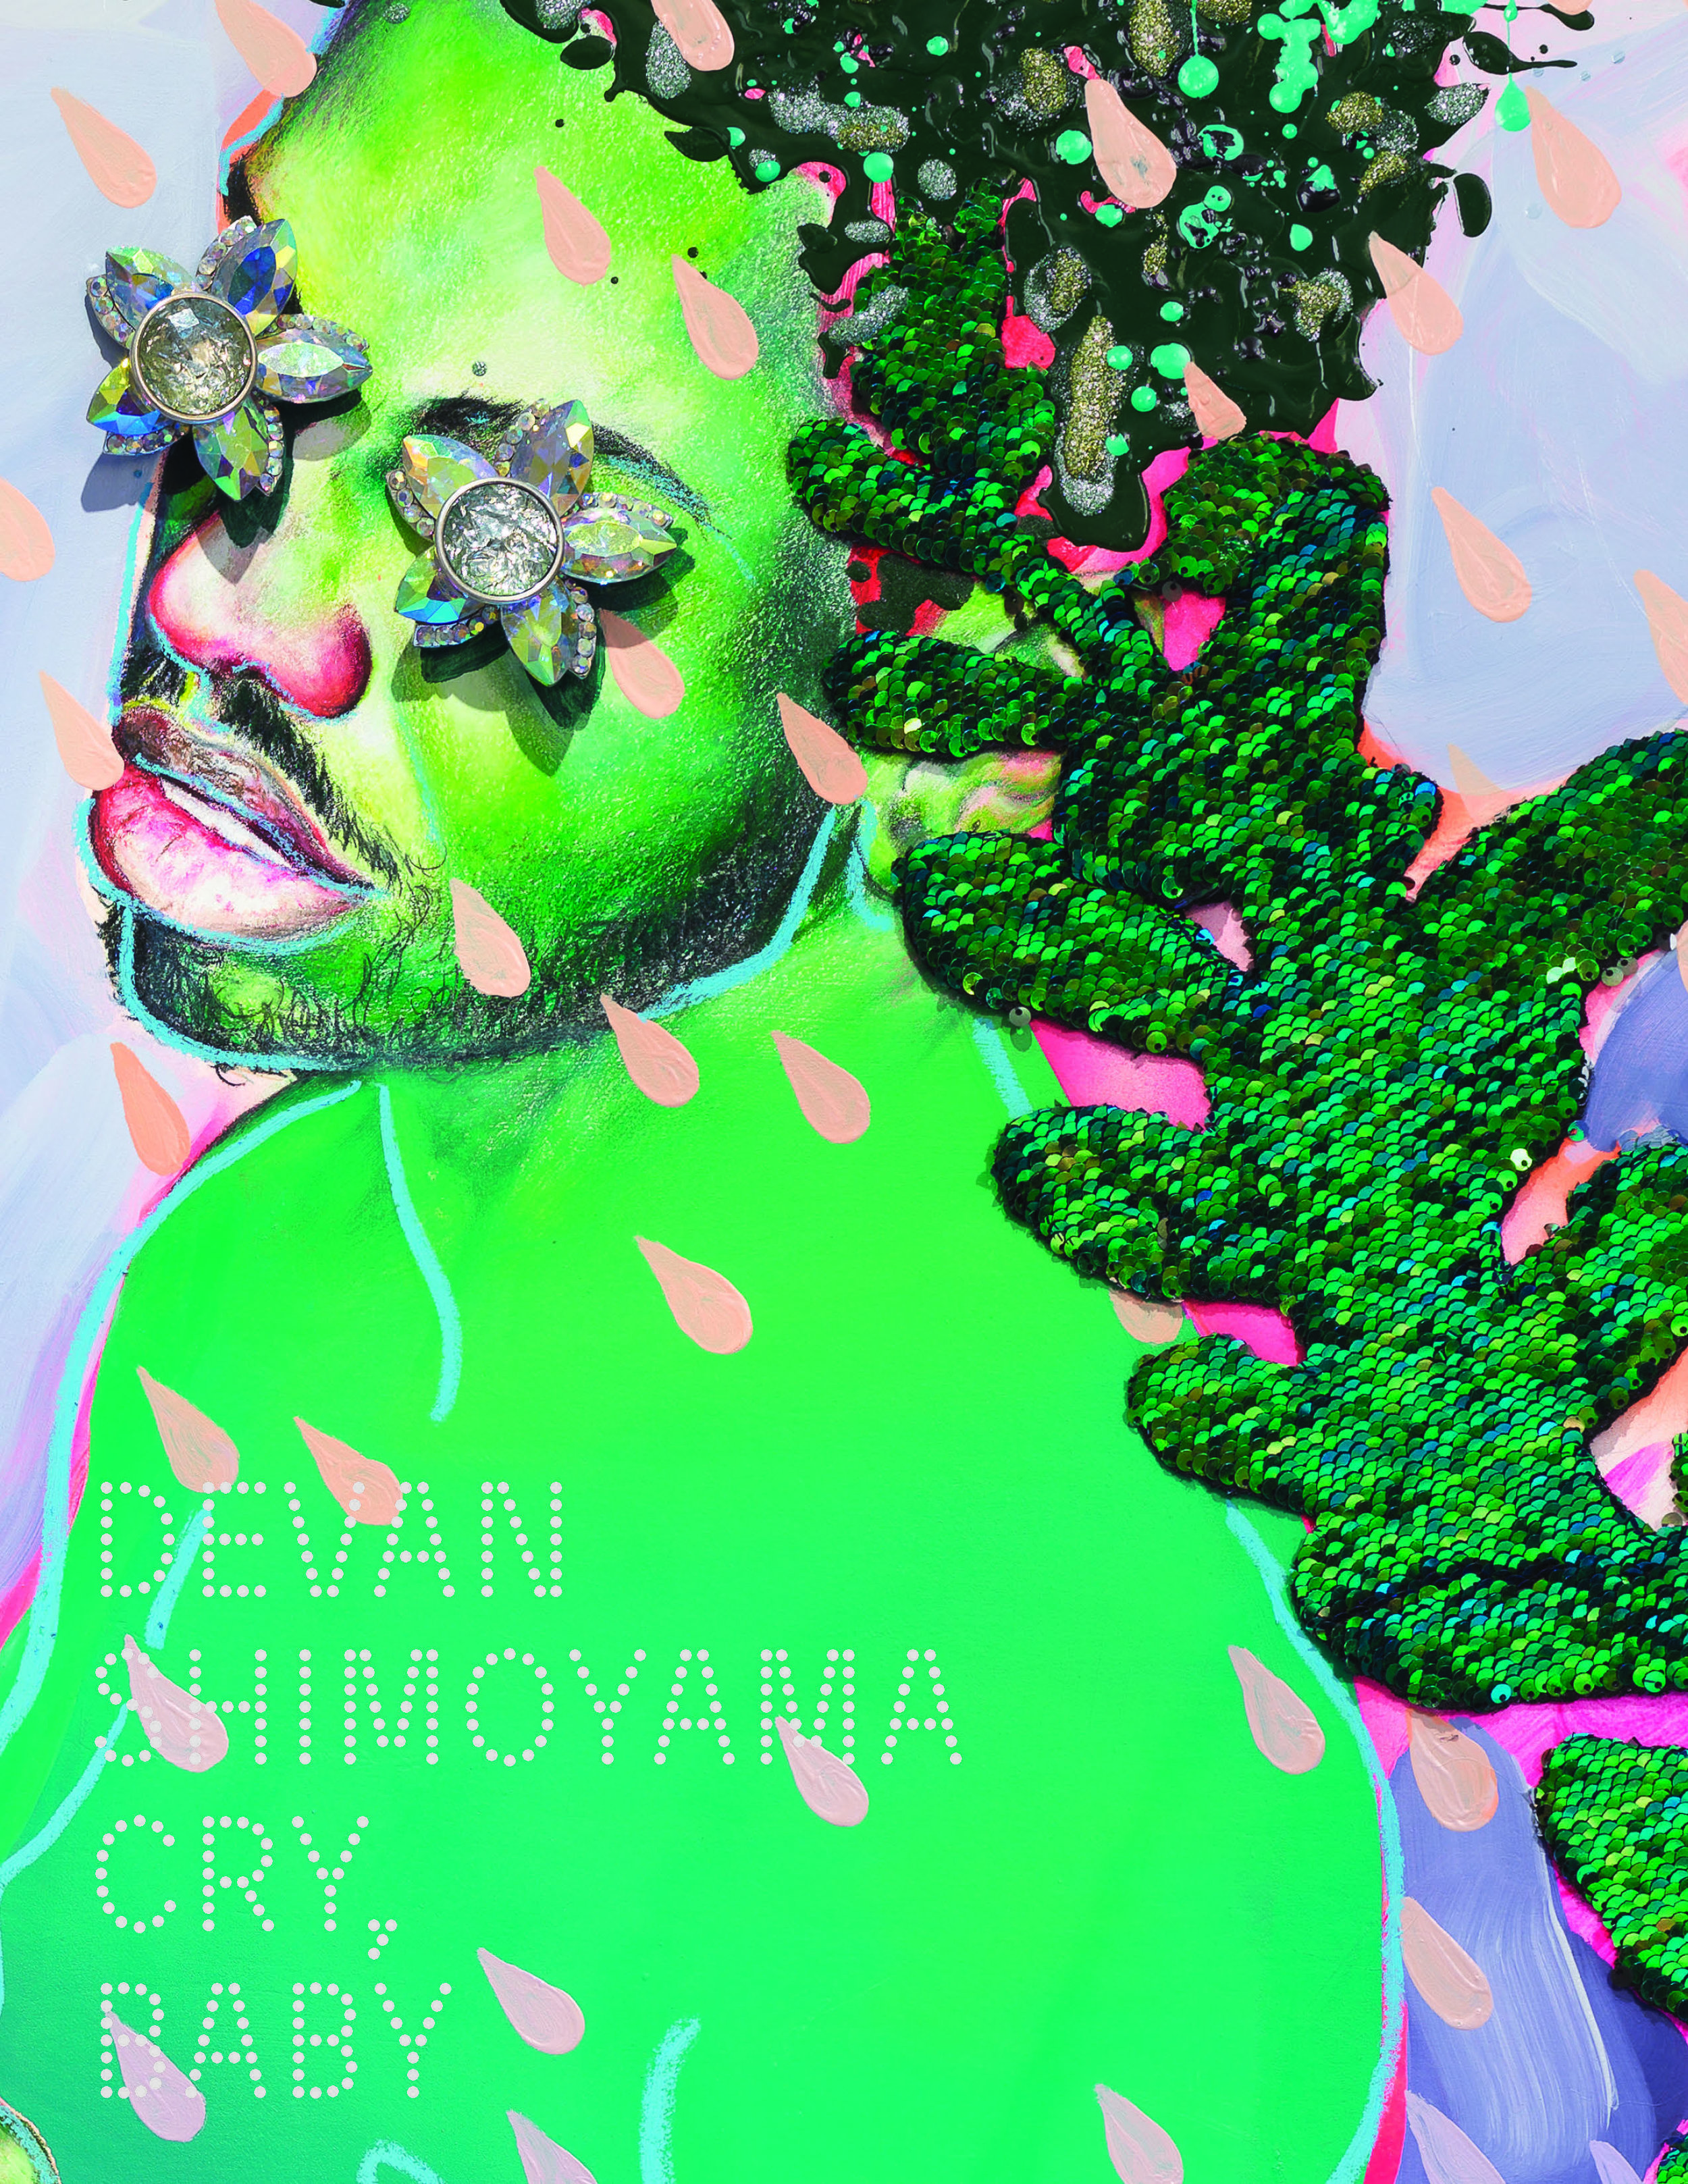 Devan Shimoyama: Cry, Baby - by Jessica Beck, exhibition catalogue, Published by The Andy Warhol Museum, 2018.